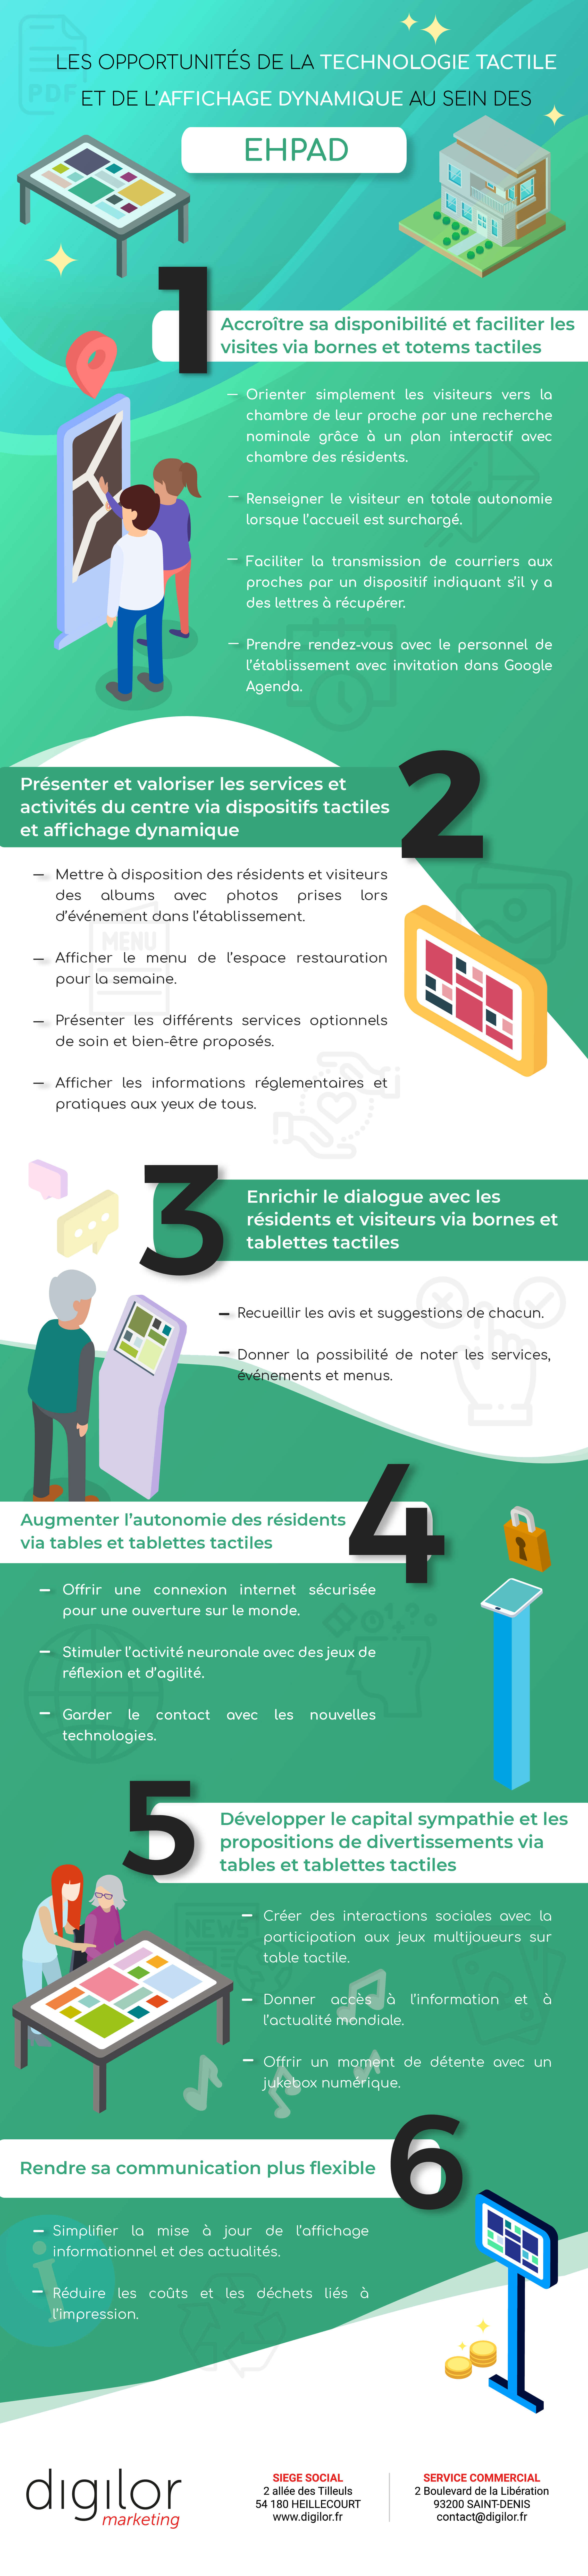 Infographie digitalisation dispositif tactile Ehpad